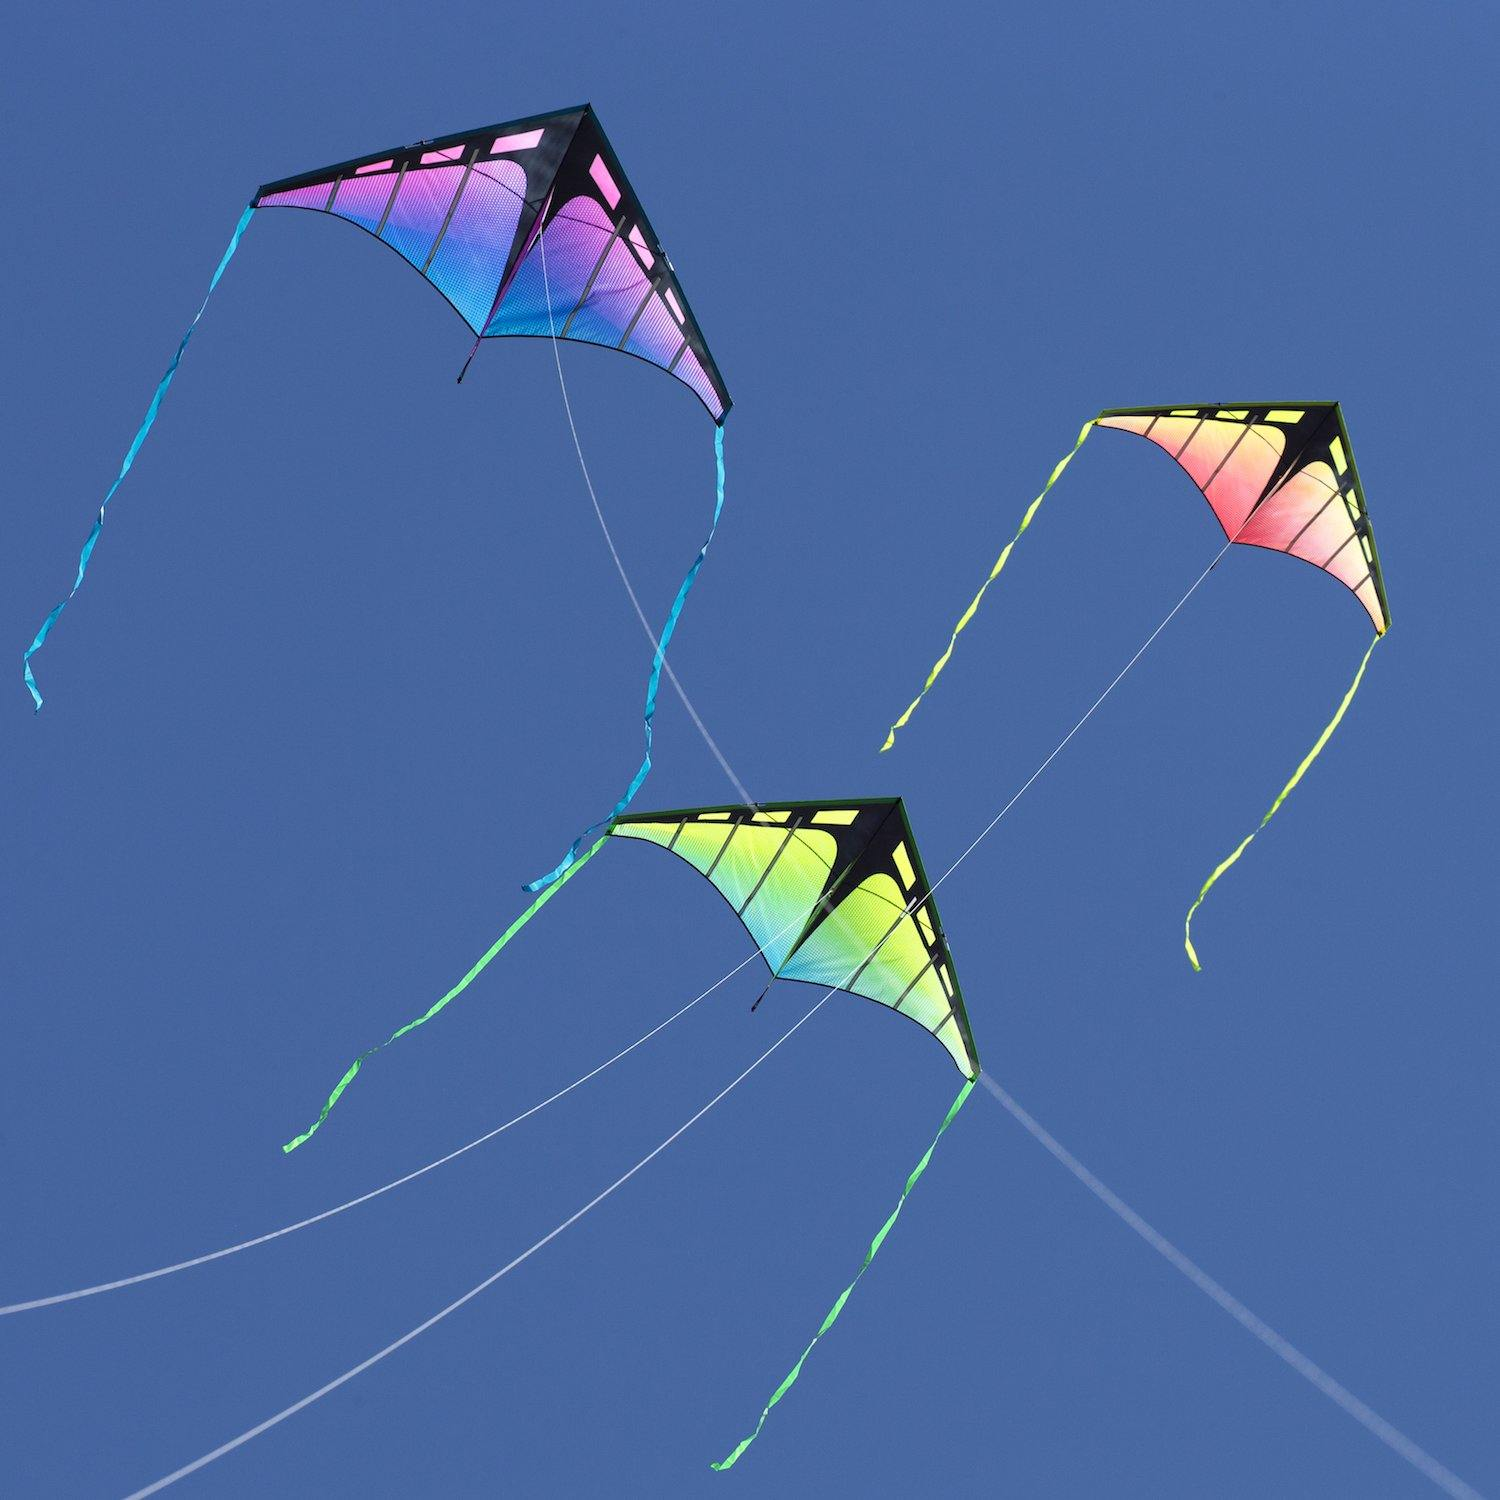 Zenith 5 Delta Kite (aka The New Stowaway)